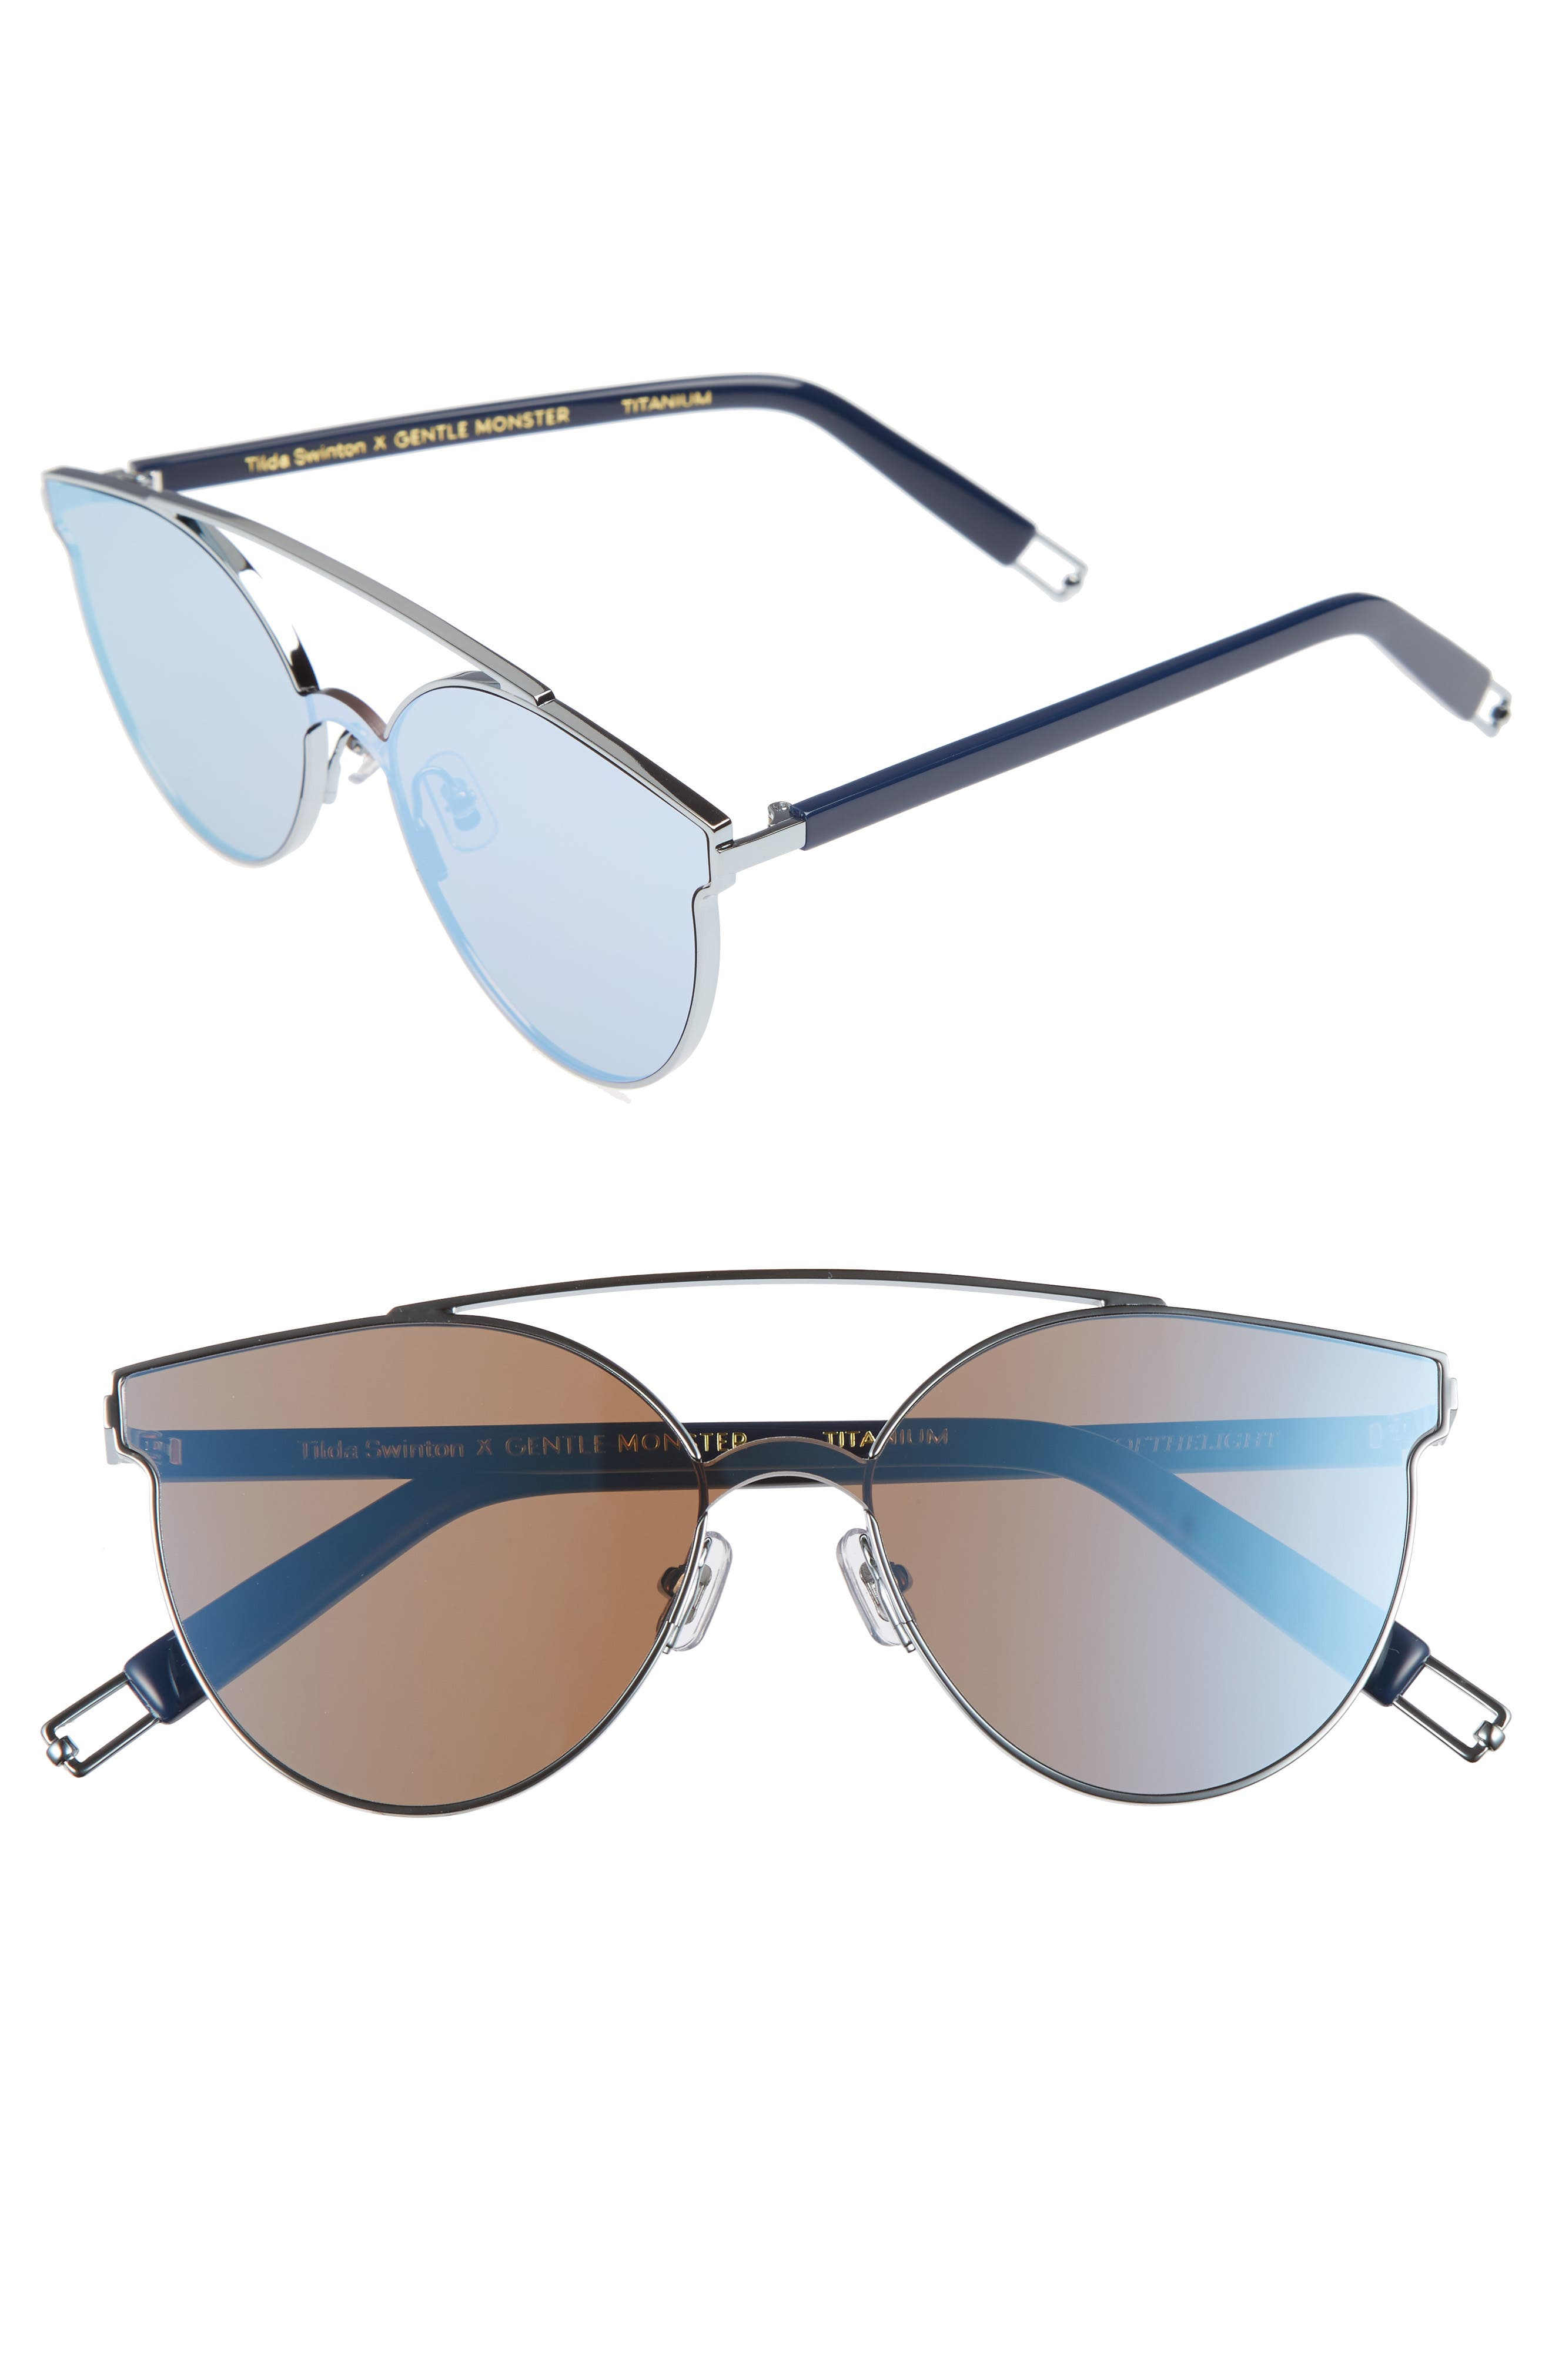 Tilda Swinton x Gentle Monster Trick of the Light 60mm Shield Sunglasses